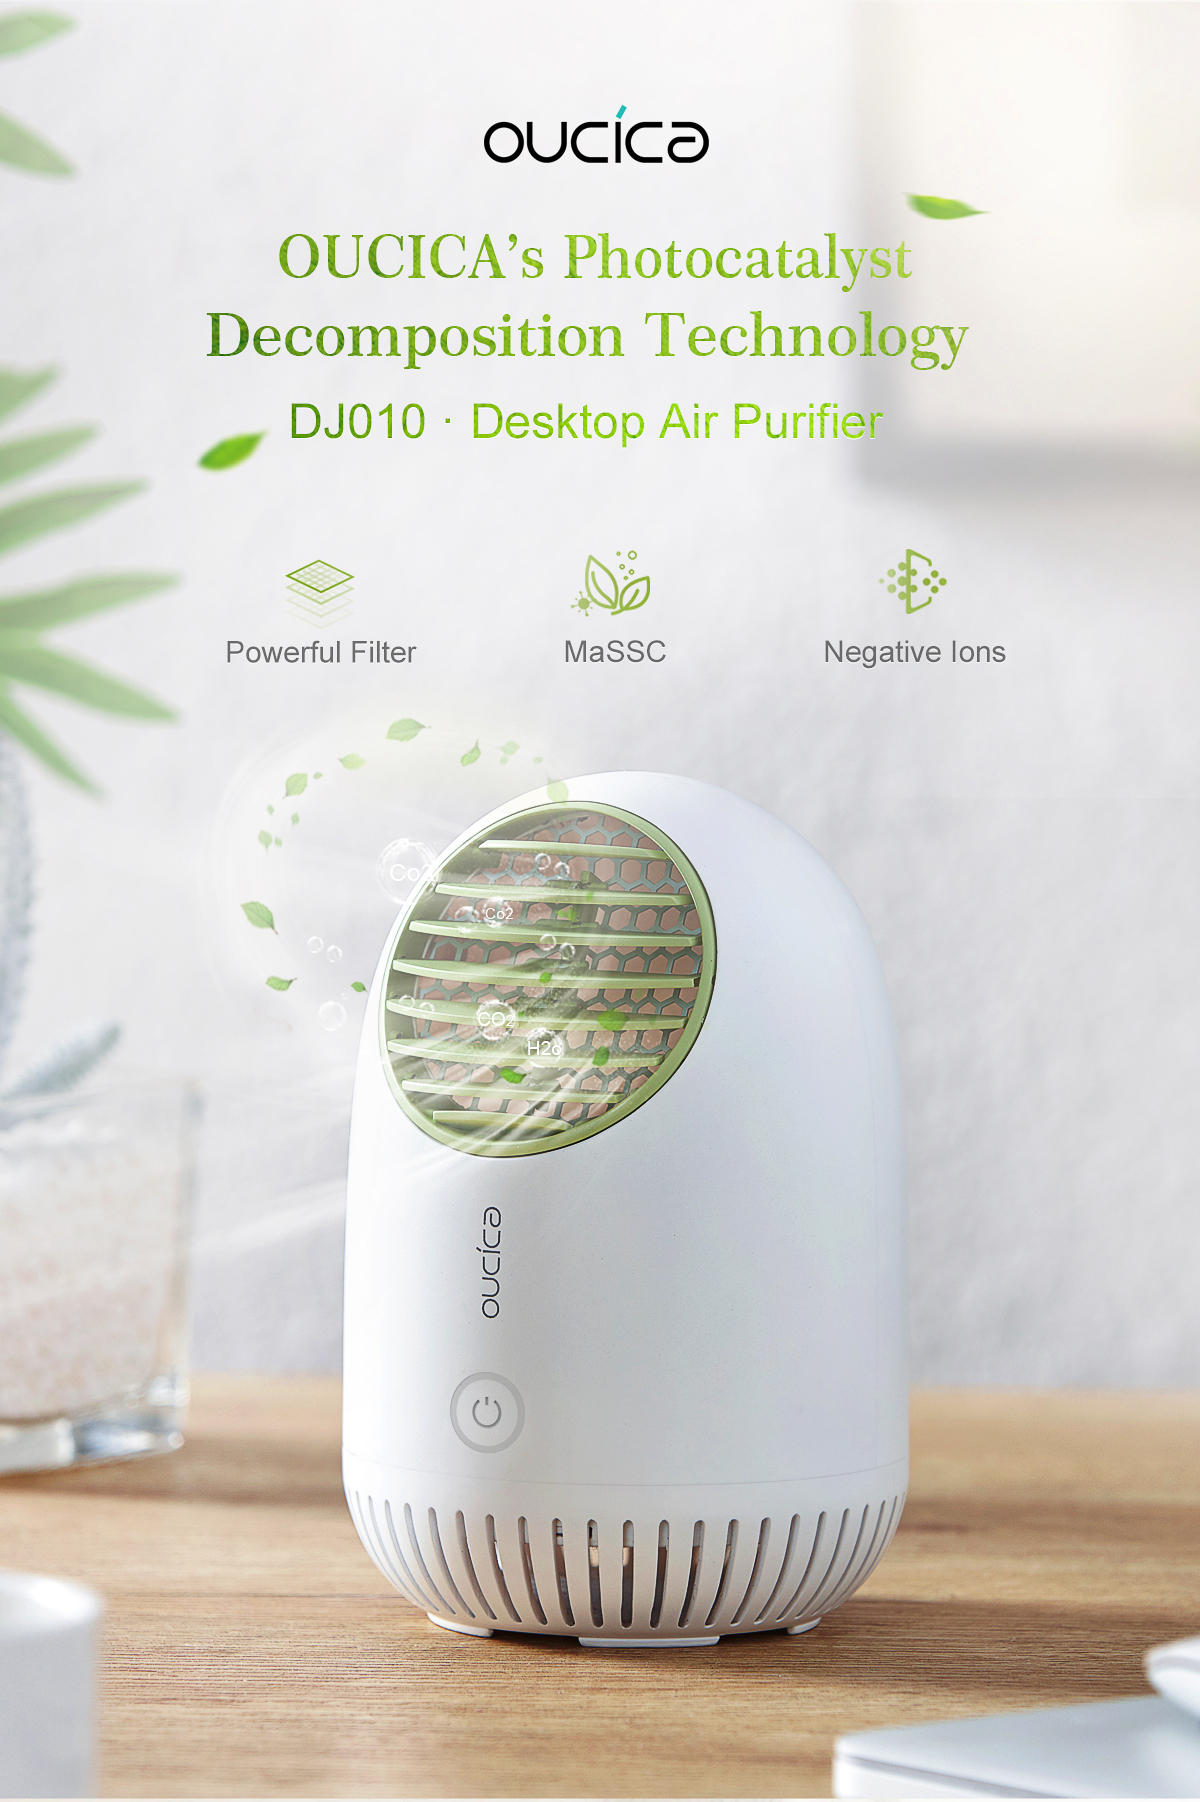 DJ101_01 Desktop Air Purifier